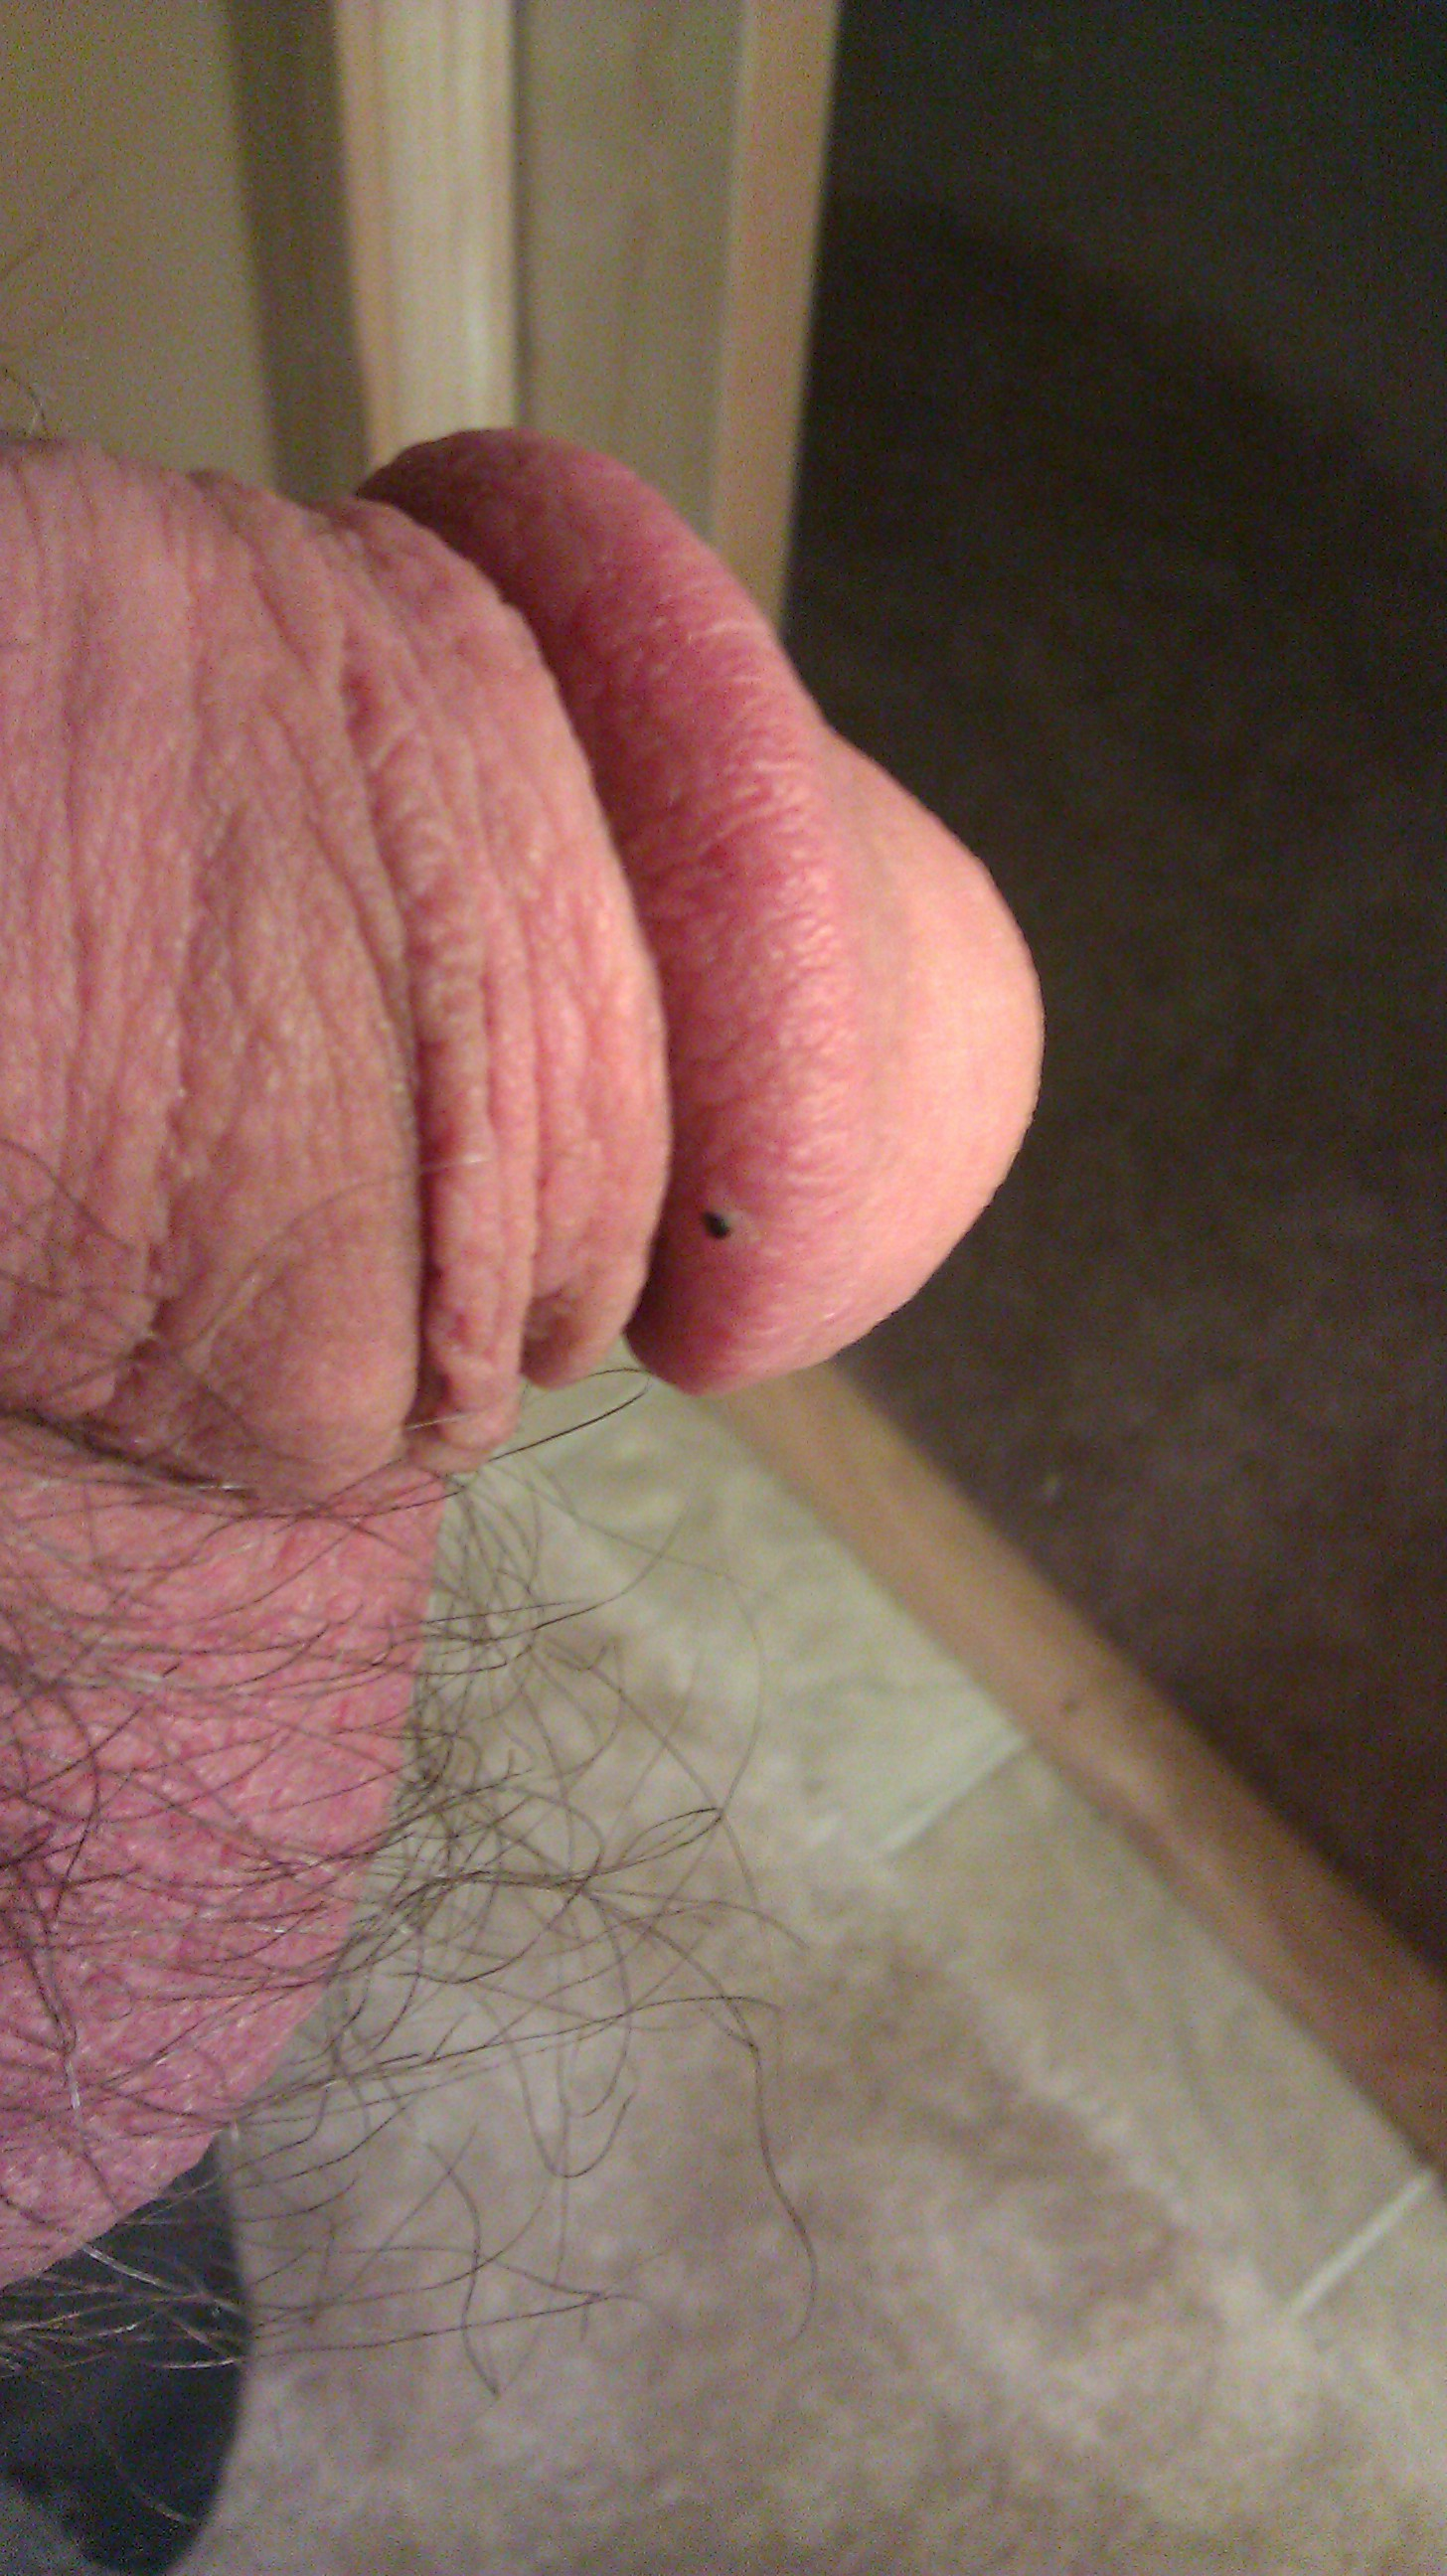 Blood blisters on penis